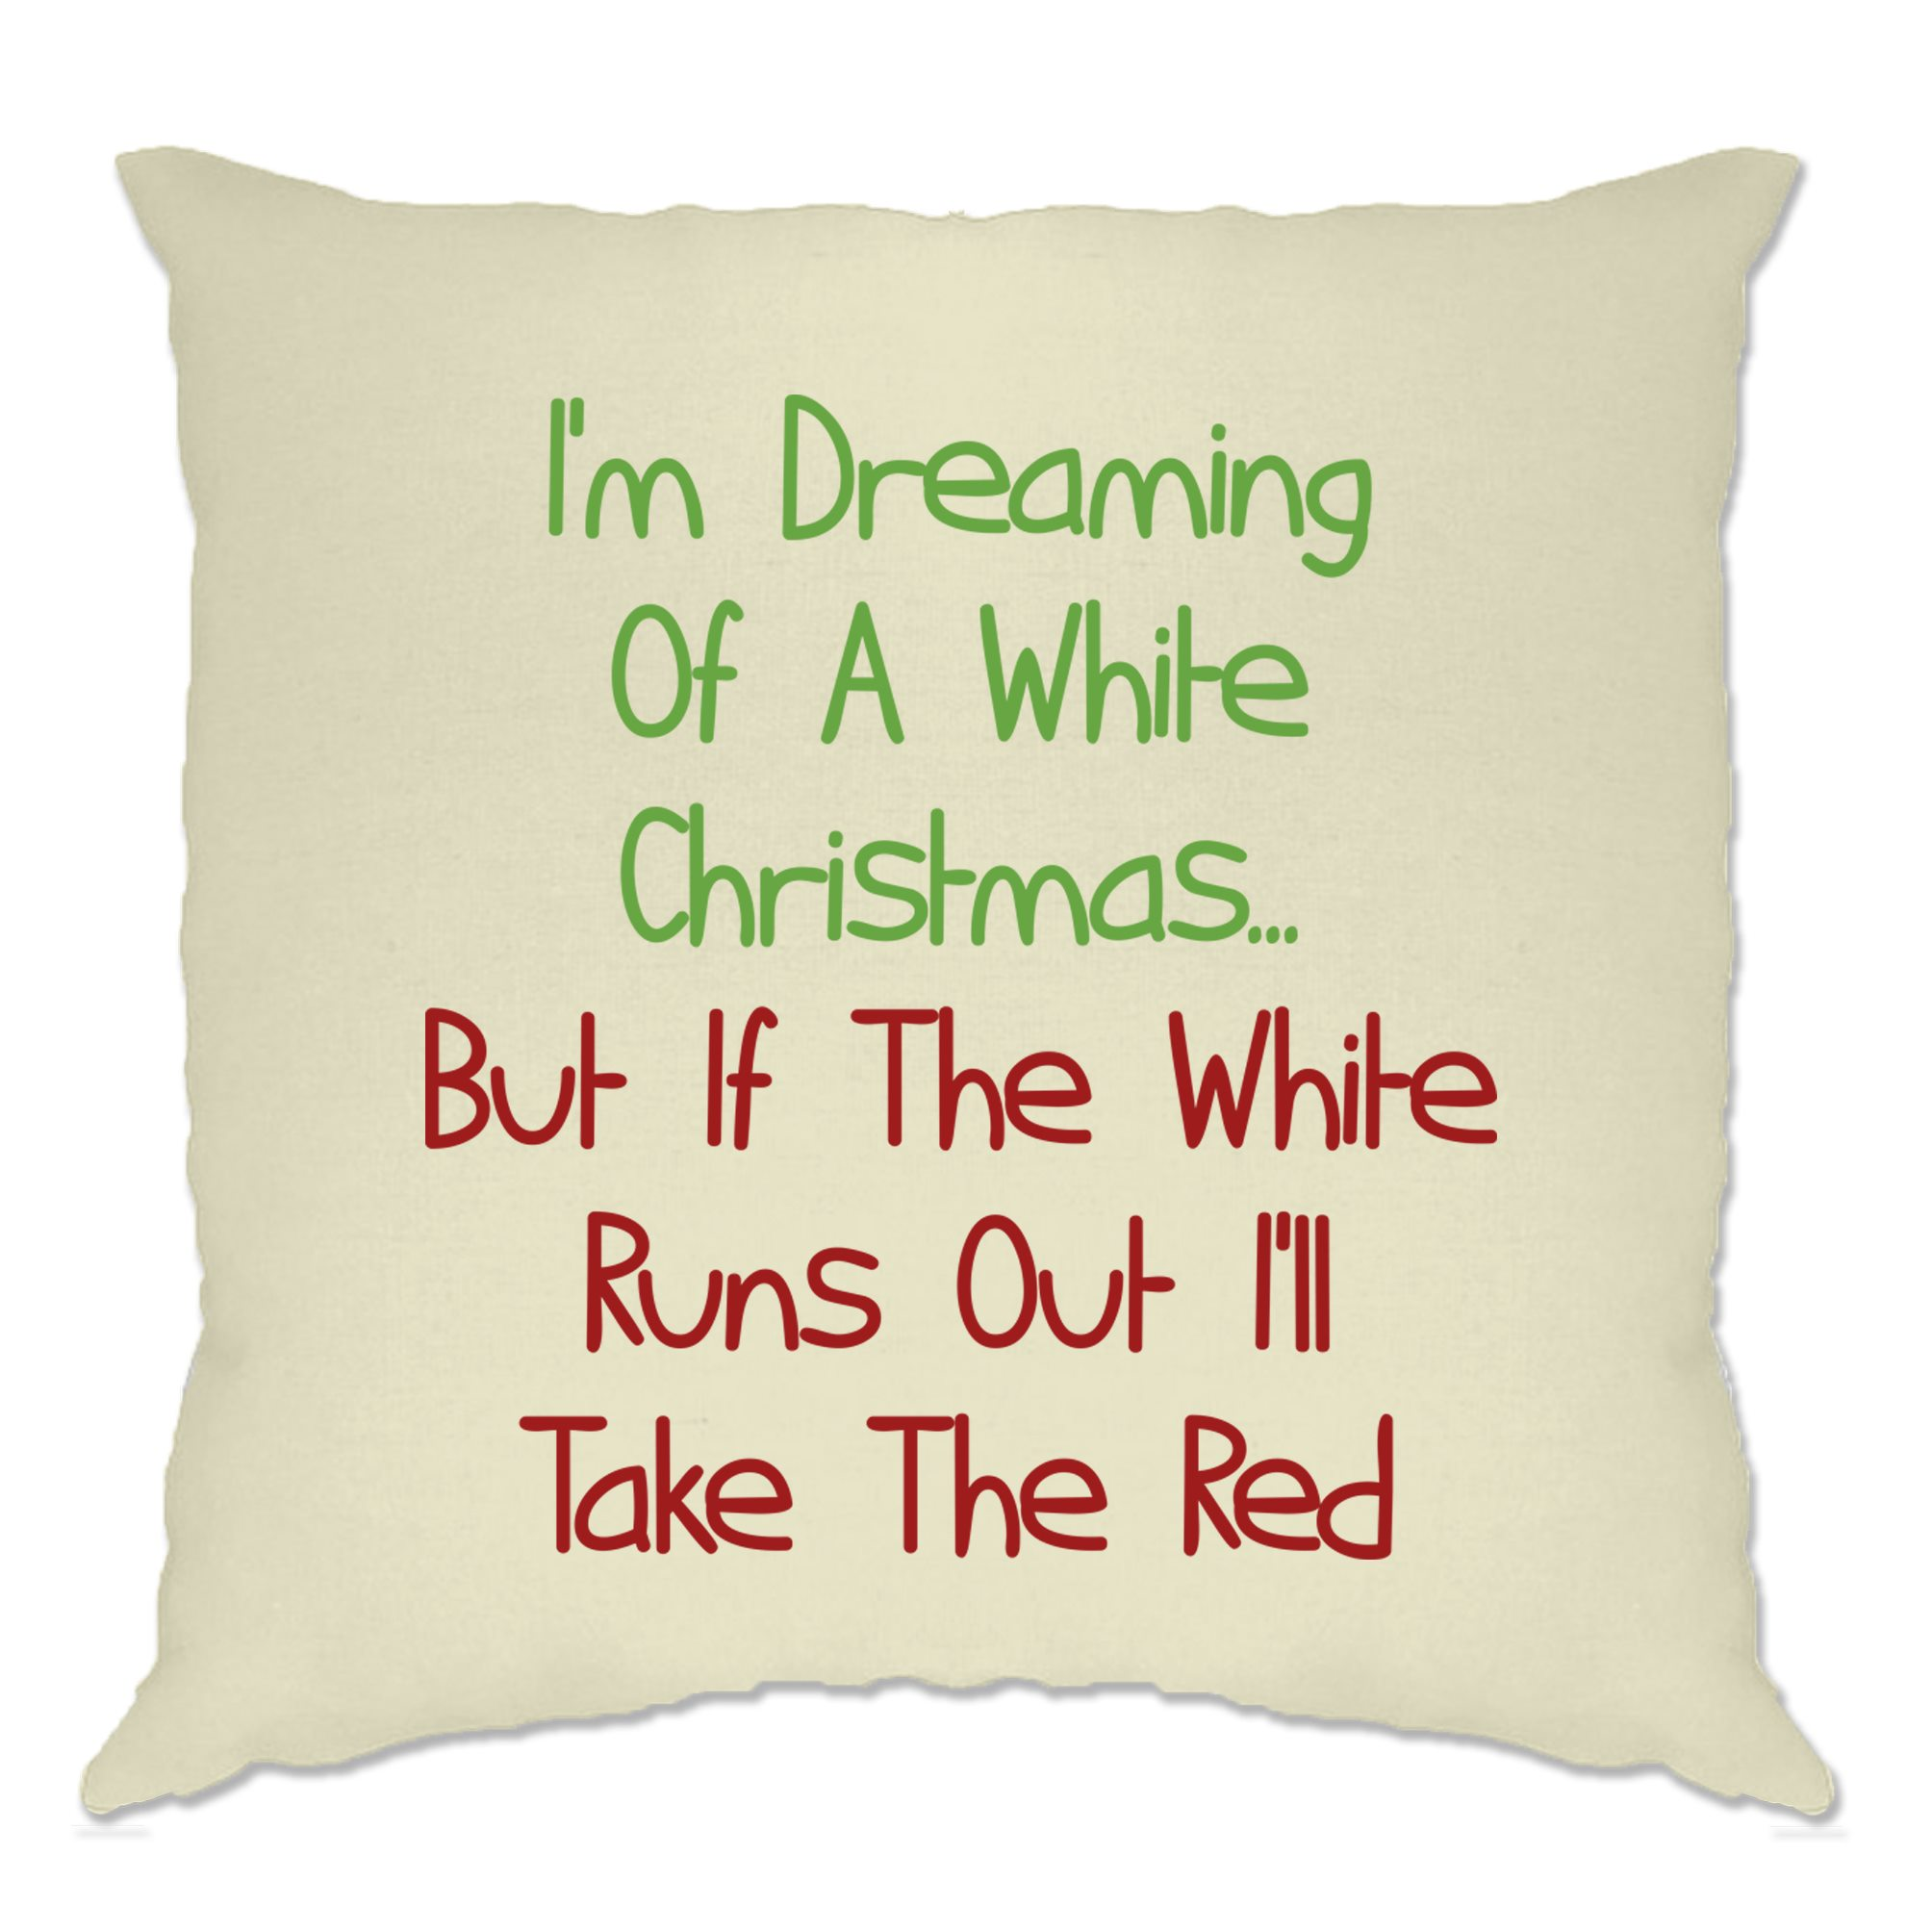 Novelty Cushion Cover Dreaming Of A White Christmas Wine Red Xmas Pun Funny Joke Ebay